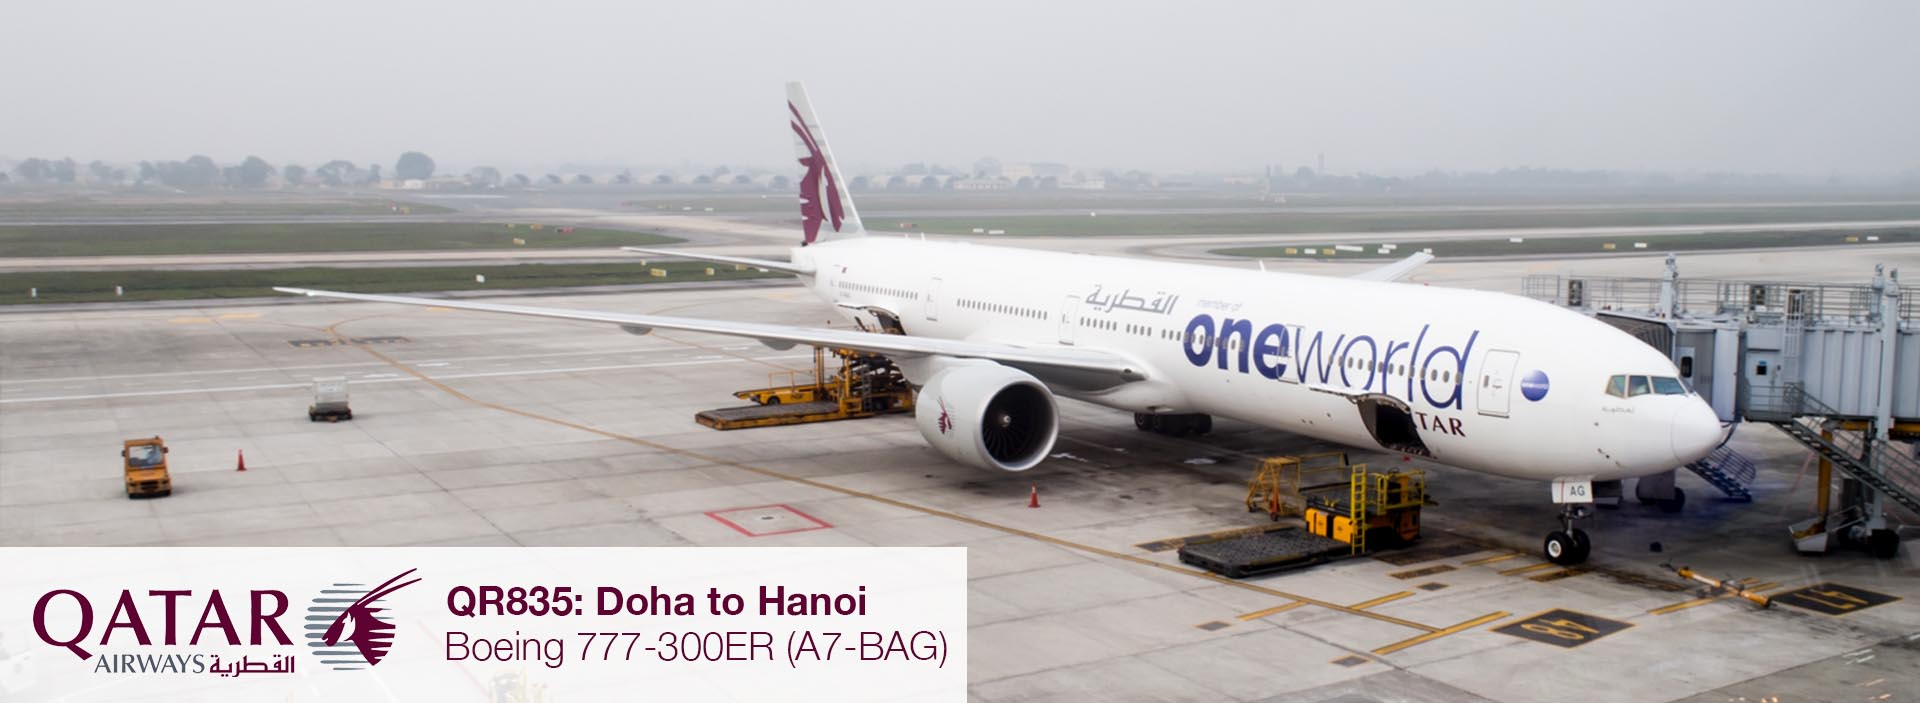 Flight Review: Qatar Airways 777-300ER Business Class from Doha to Hanoi via Bangkok